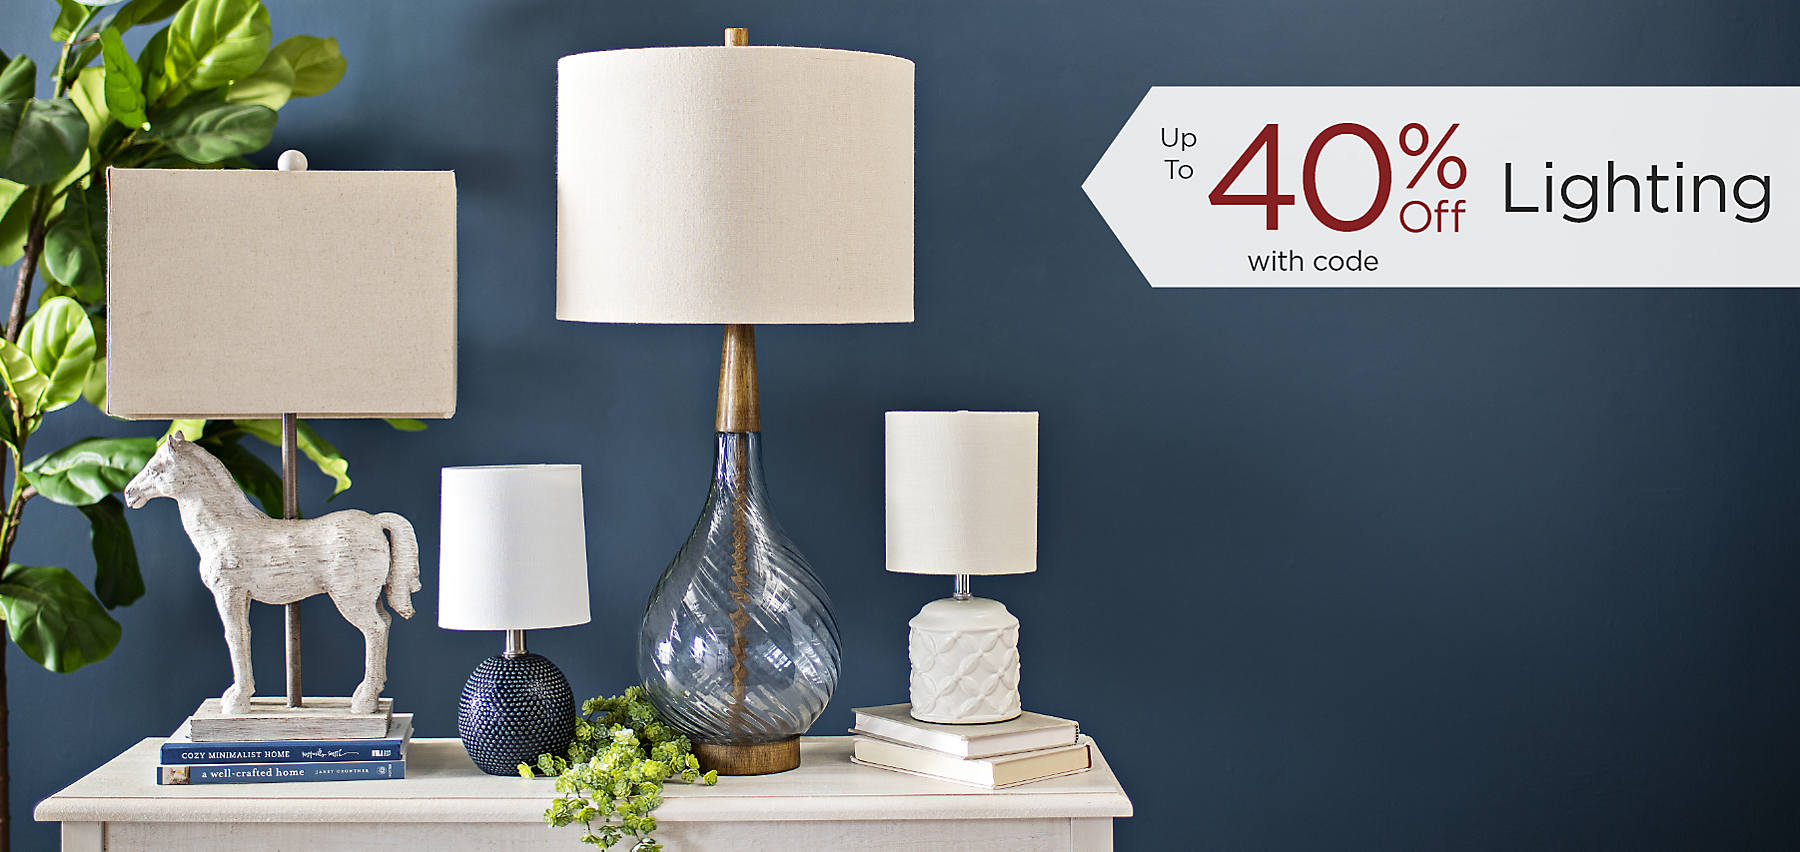 Up to 40% Off Lighting with code